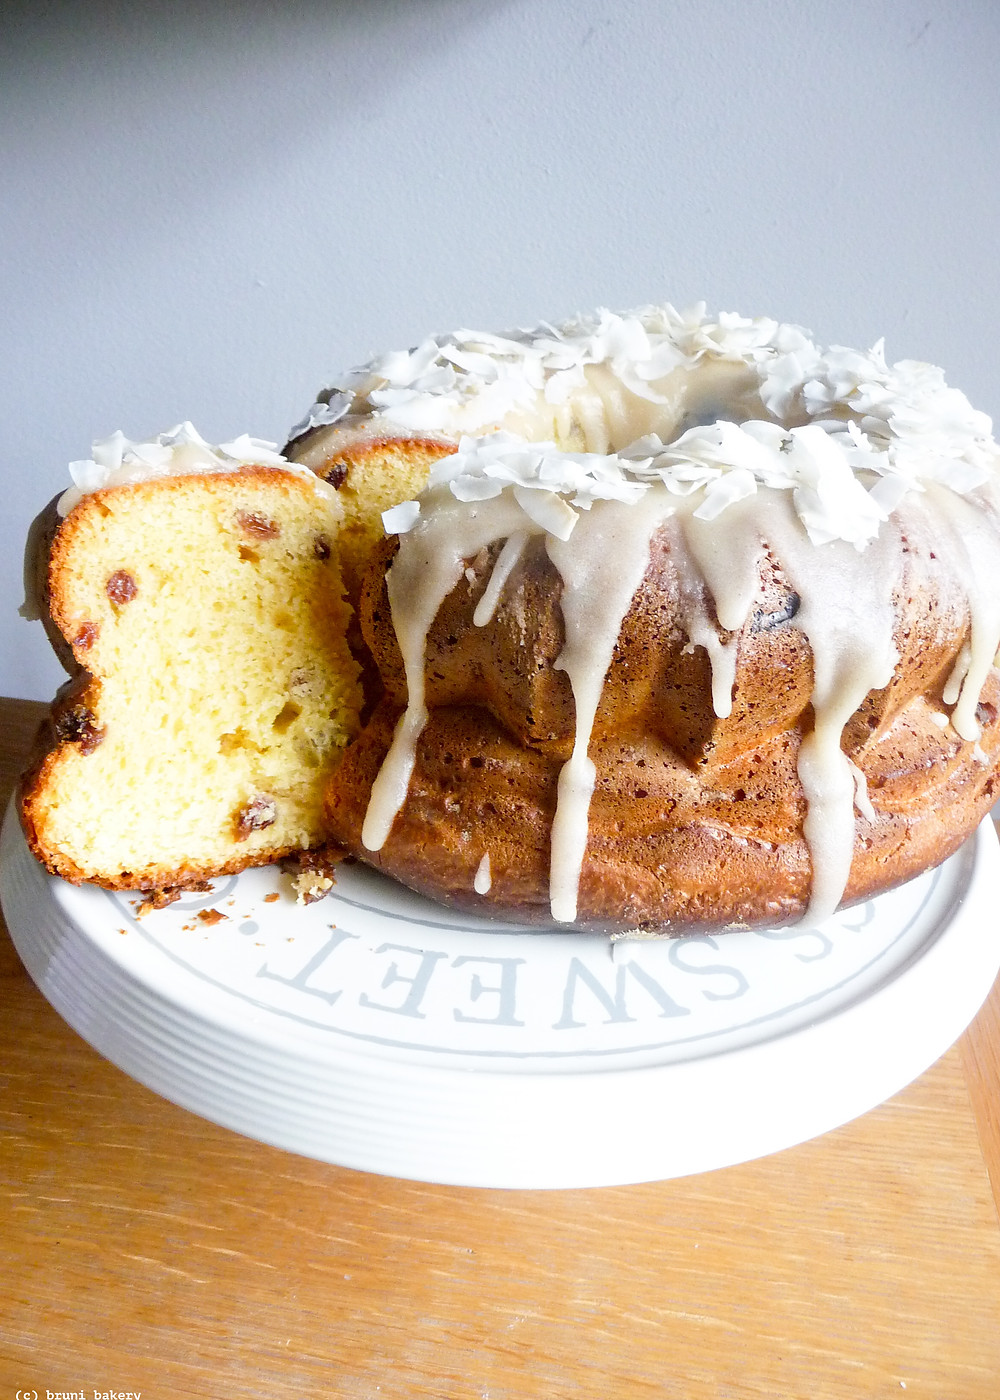 Rum Baba with Rum-Butter Glaze